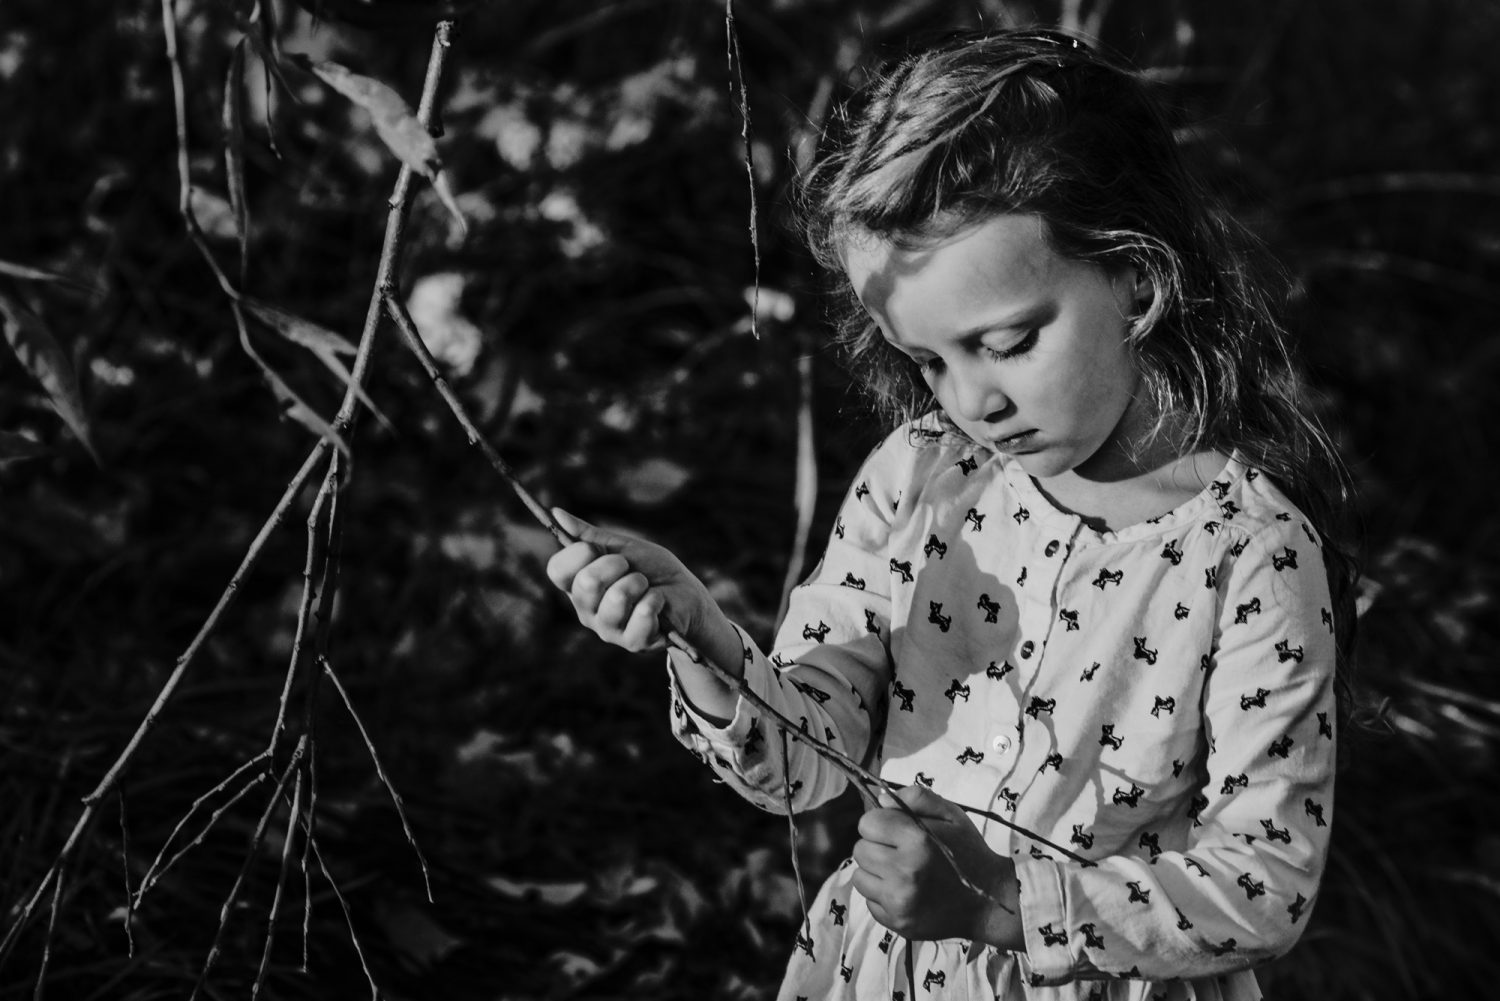 Documentary Photograph of girl with a branch